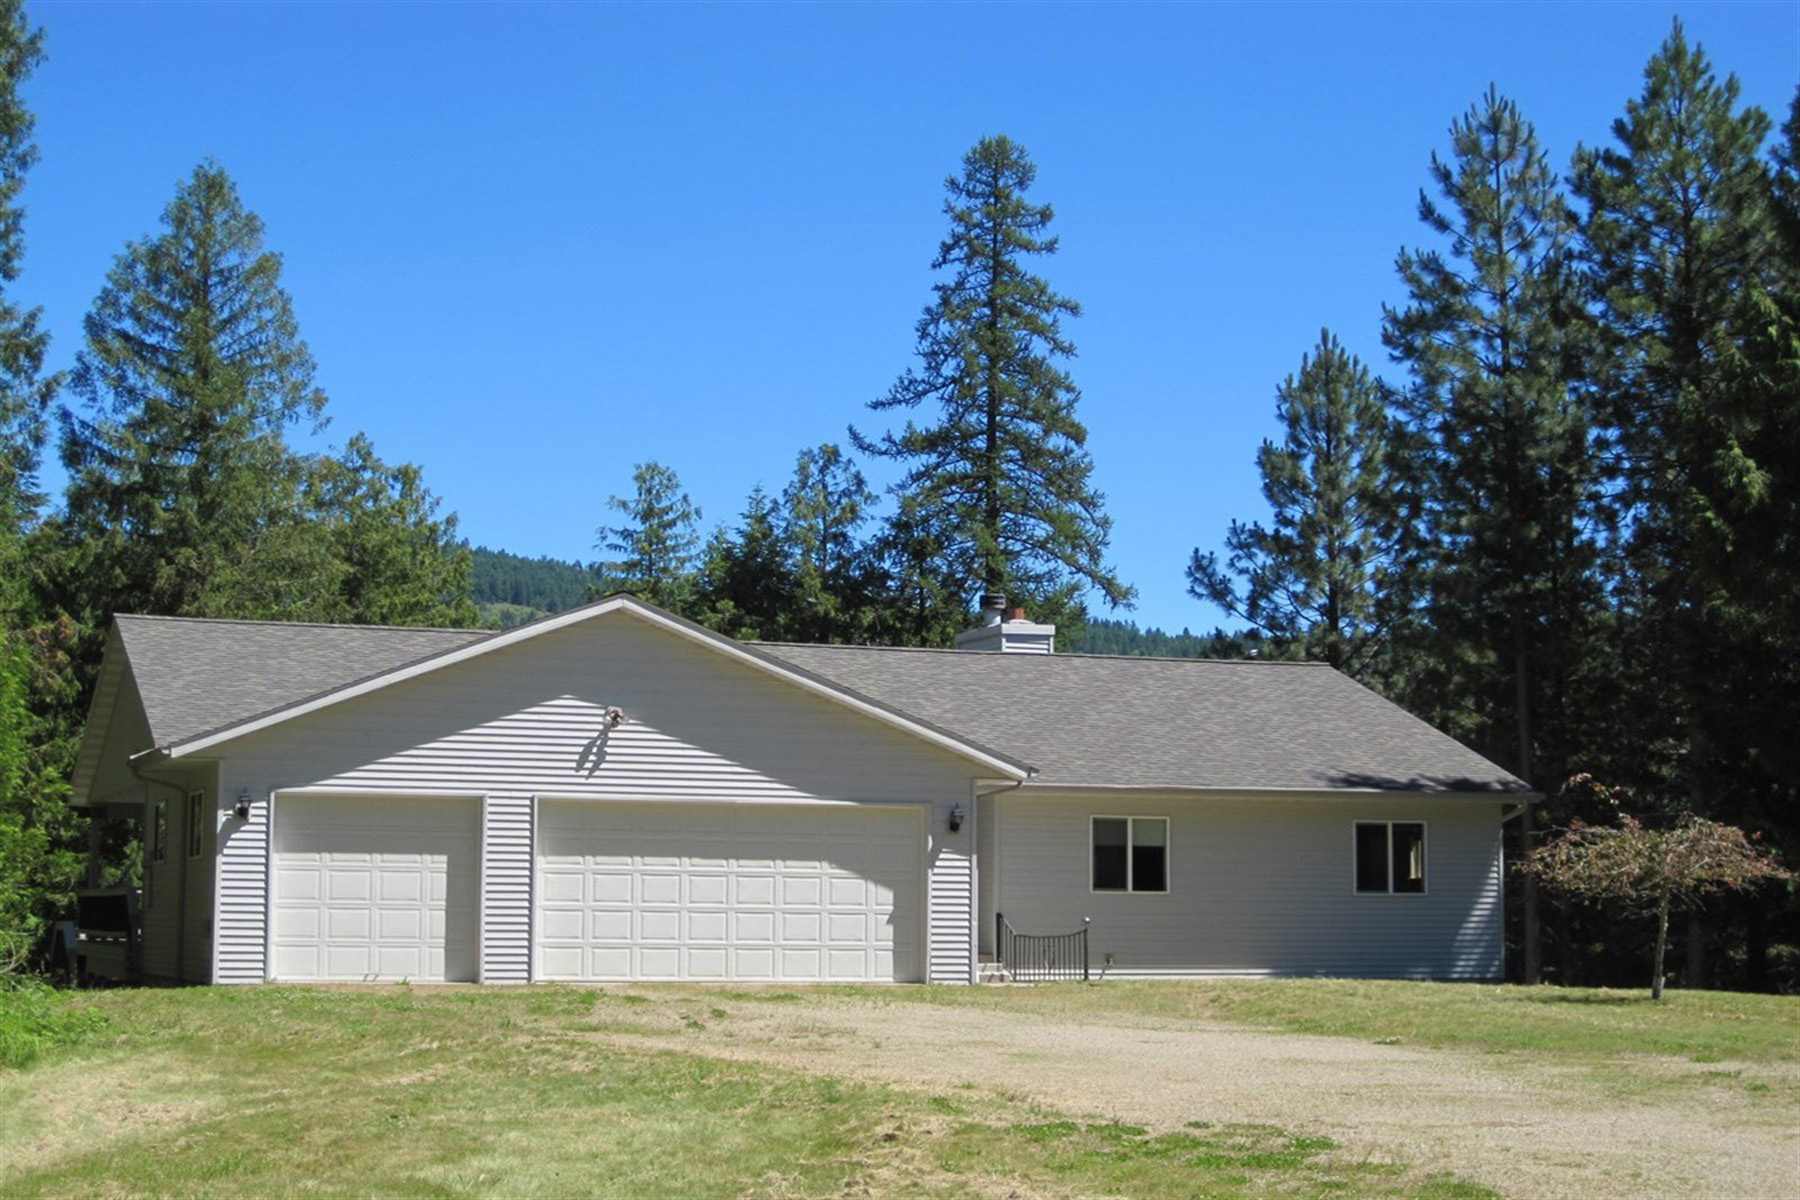 Single Family Home for Sale at Private, treed setting with mountain views 143 Sherwoods Sagle, Idaho 83860 United States